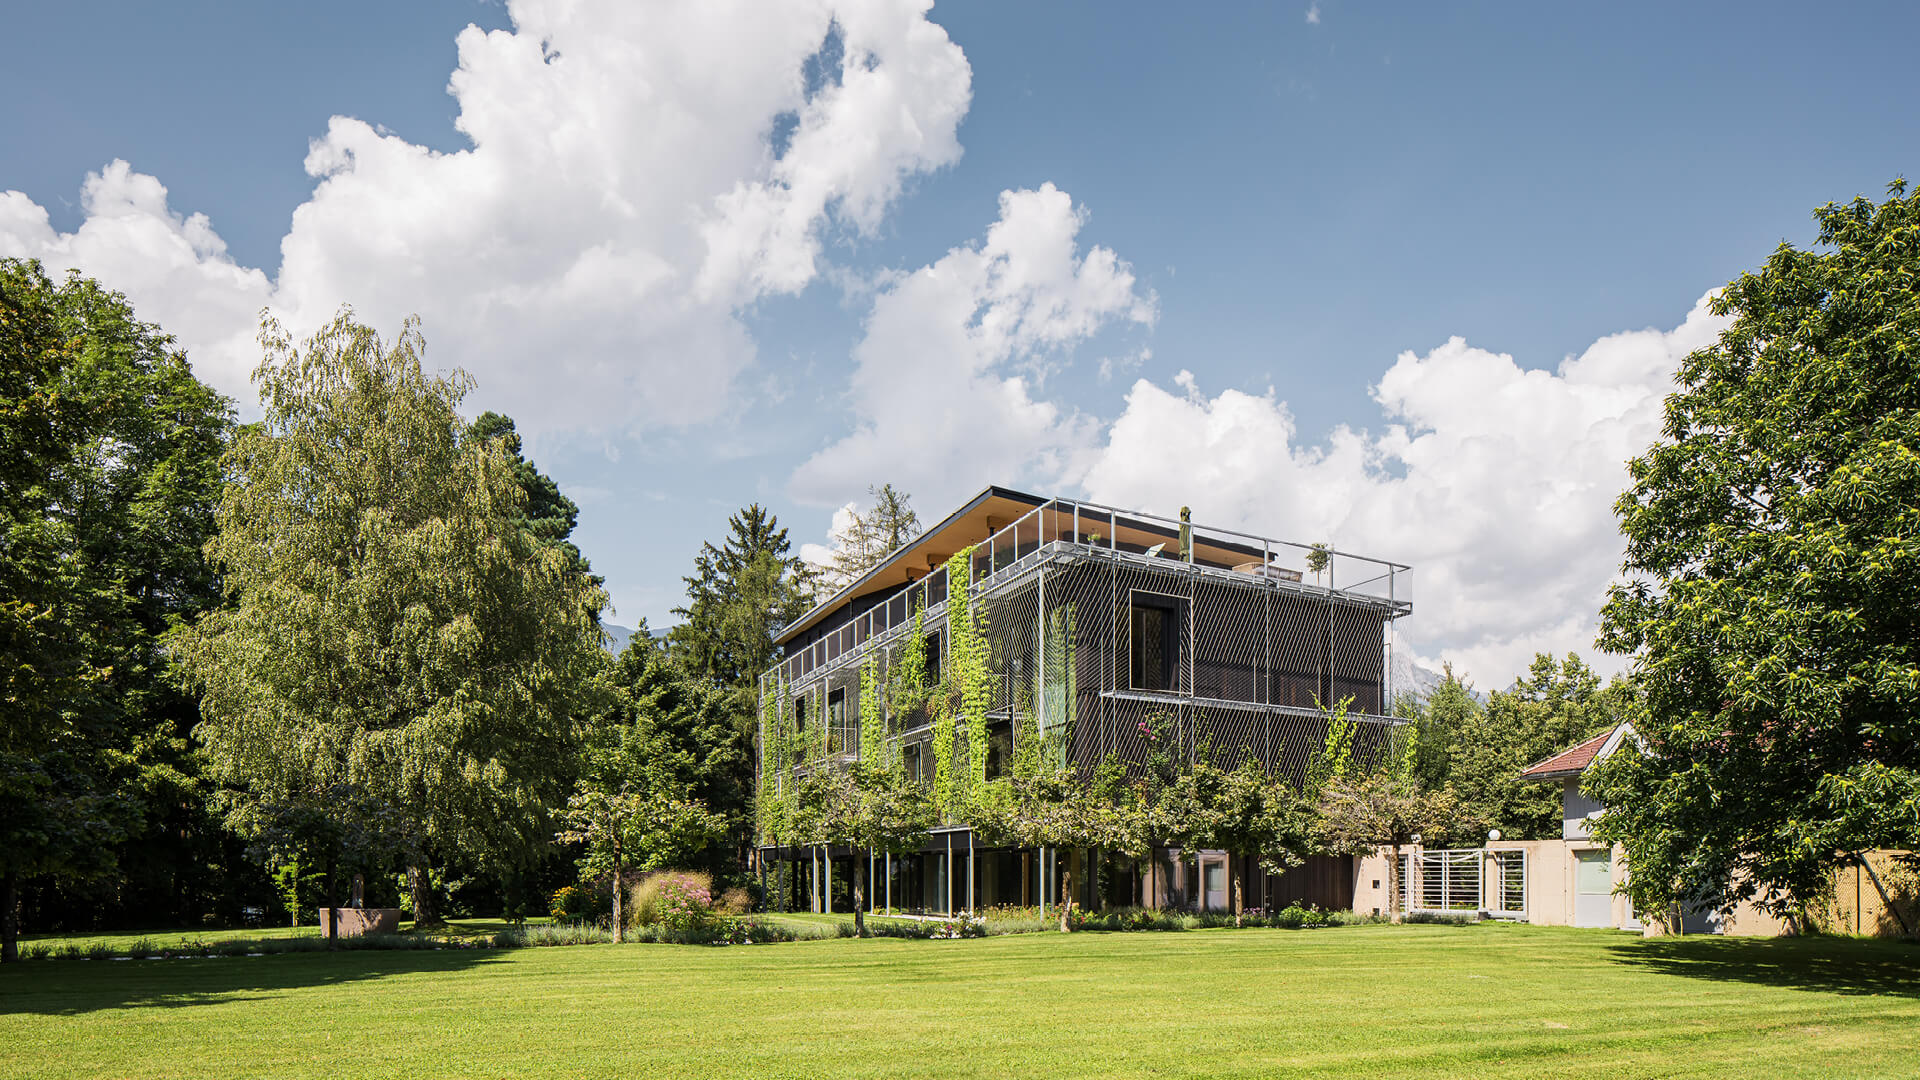 Snøhetta completes timber clad, open plan headquarters for travel company ASI Reisen in Austria | ASI Reisen Headquarters by Snøhetta | STIRworld